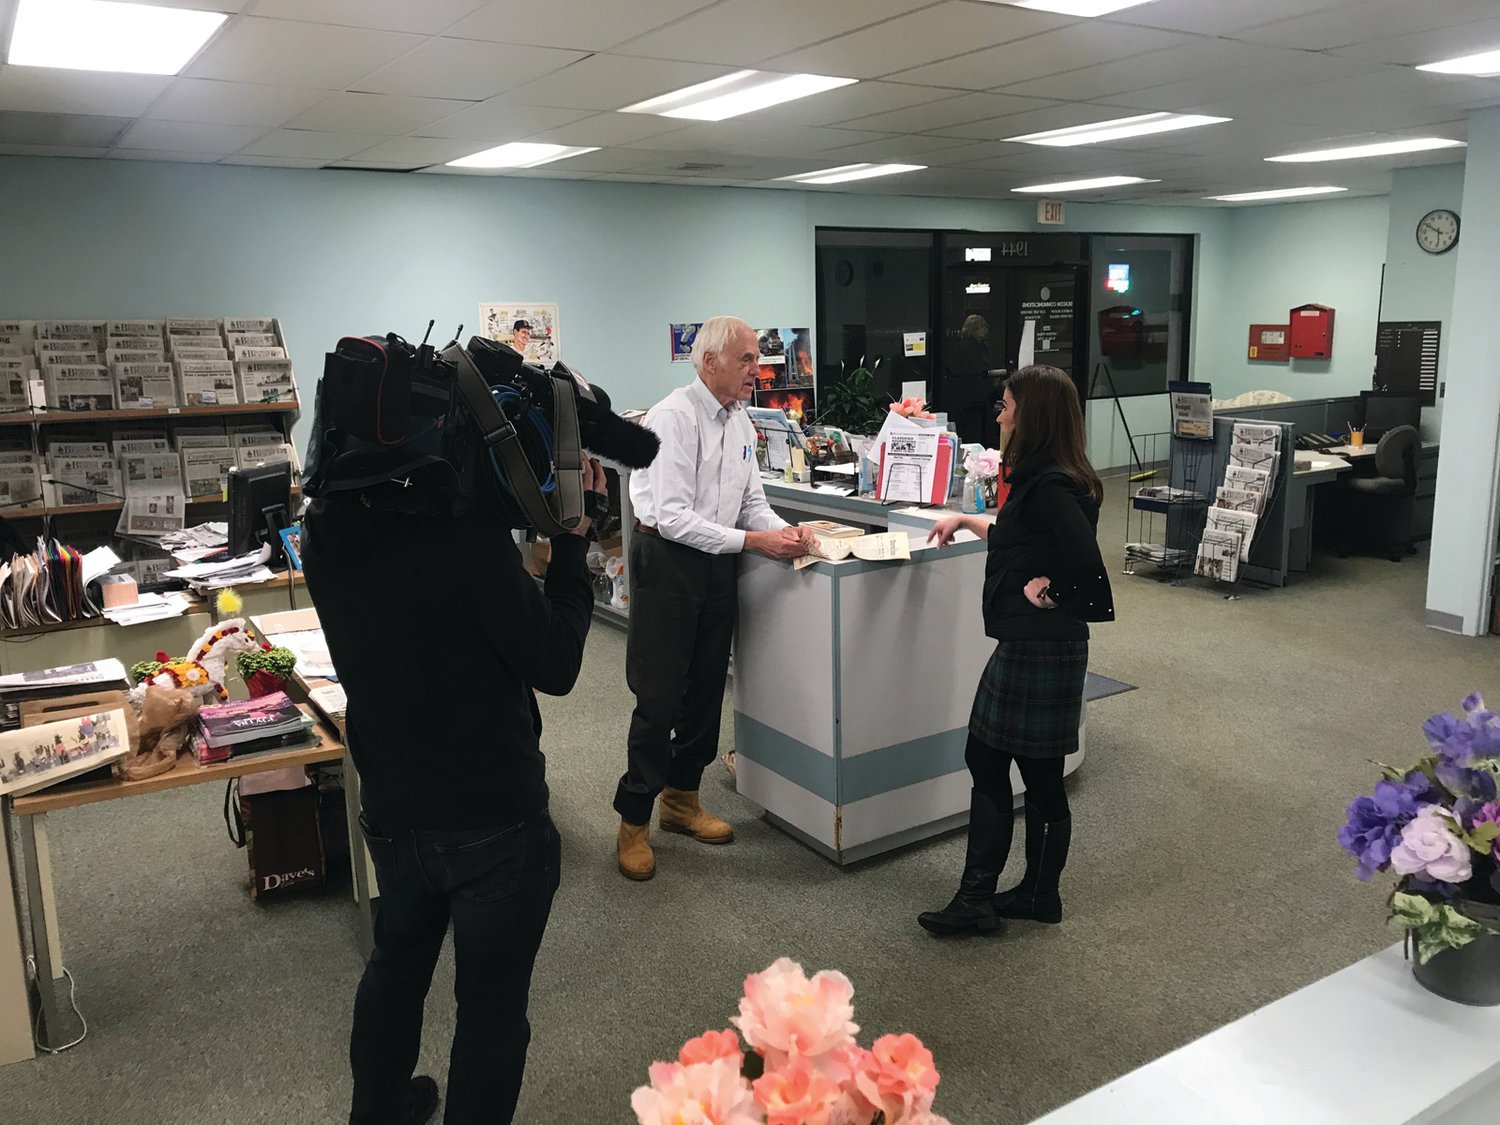 BEHIND THE SCENES: John Howell speaks with WPRI's Kim Kalunian during the taping of a recent segment on the 50th anniversary of his ownership of the Warwick Beacon.